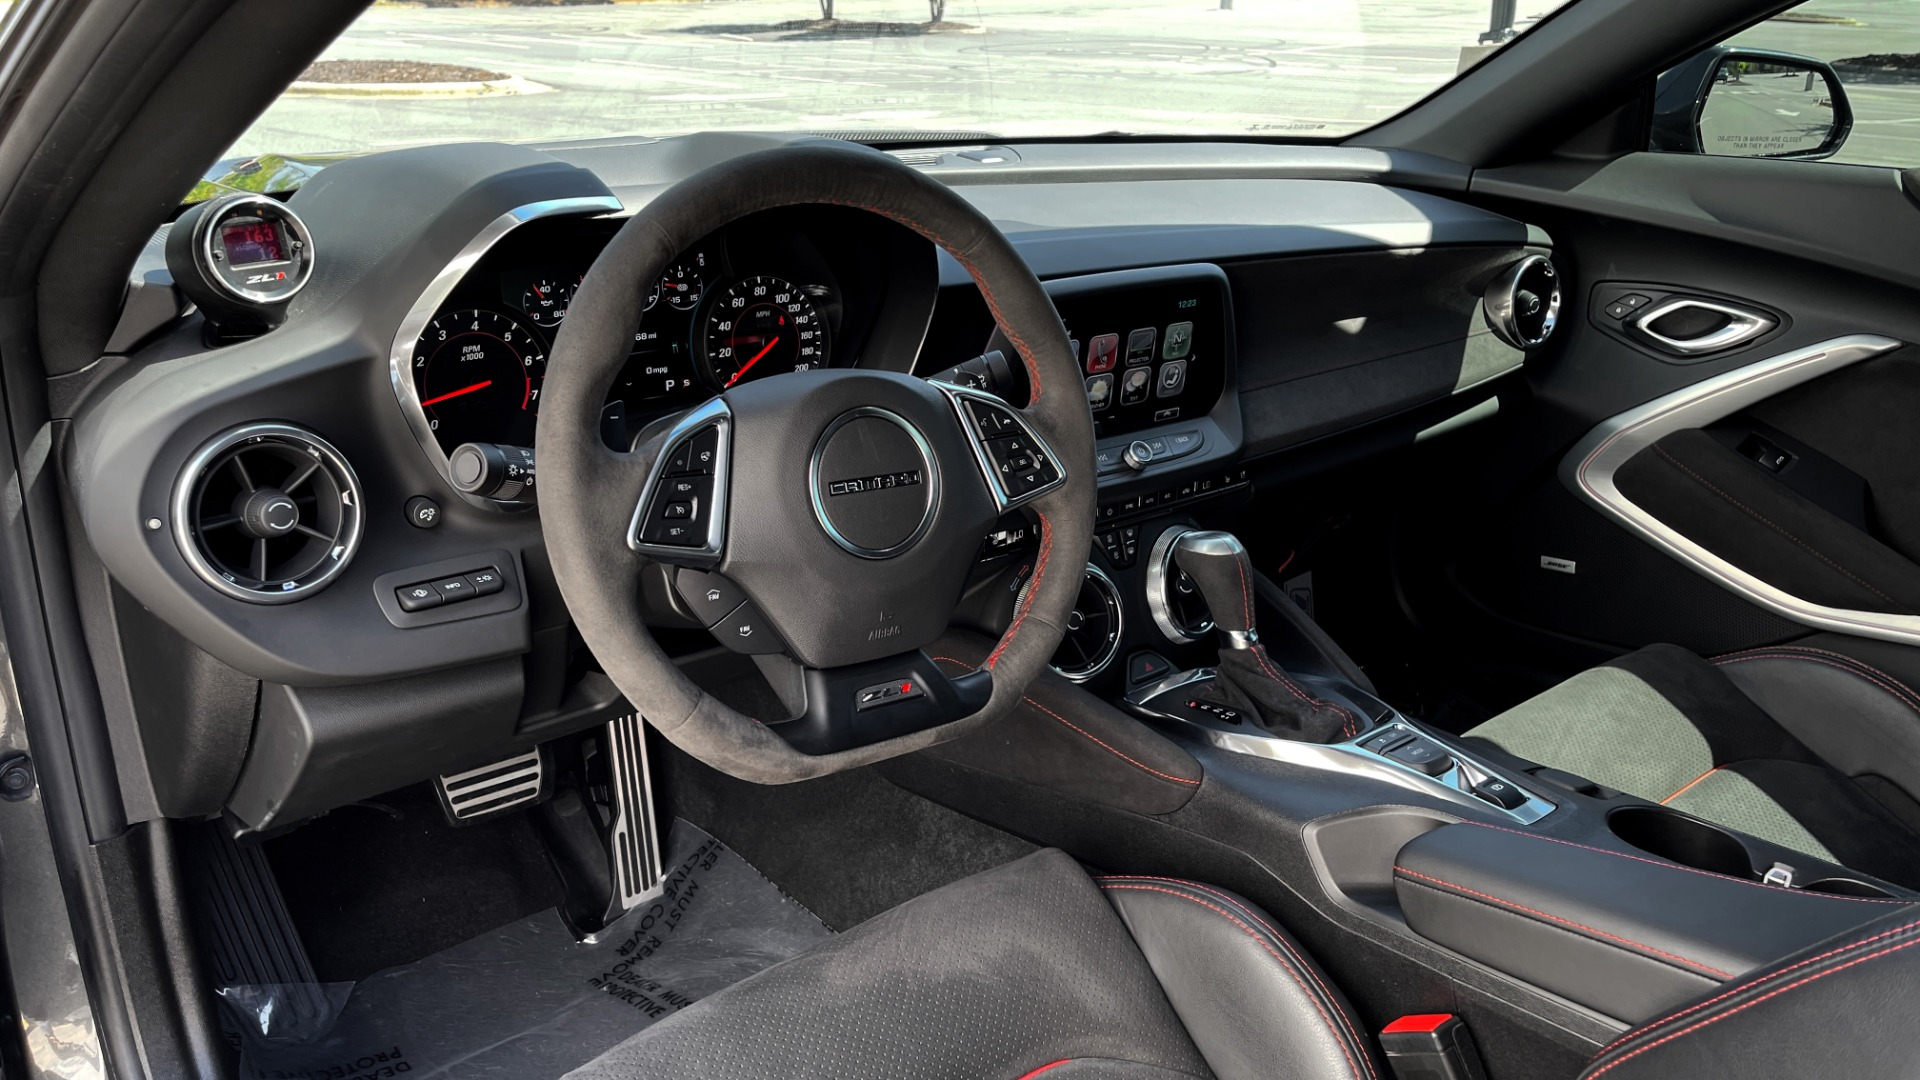 Used 2018 Chevrolet CAMARO ZL1 SUPERCHARGED COUPE 850HP / 10-SPD AUTO / NAV / BOSE / REARVIEW for sale $59,995 at Formula Imports in Charlotte NC 28227 30